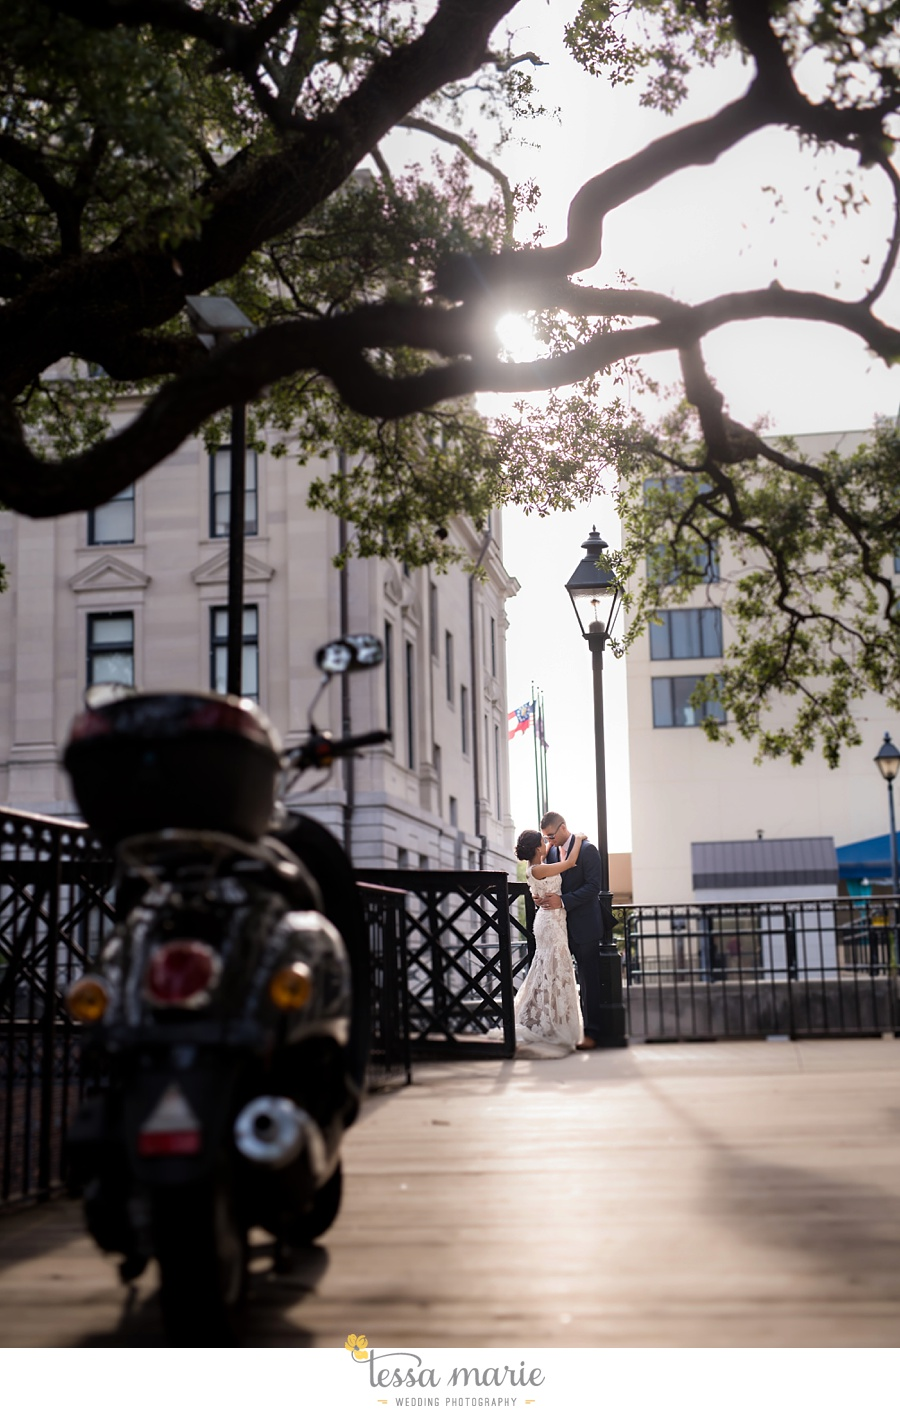 savannah_destination_wedding_photographer_wormsole_elopement_tessa_marie_weddings_essence_of_australia_gown_0143